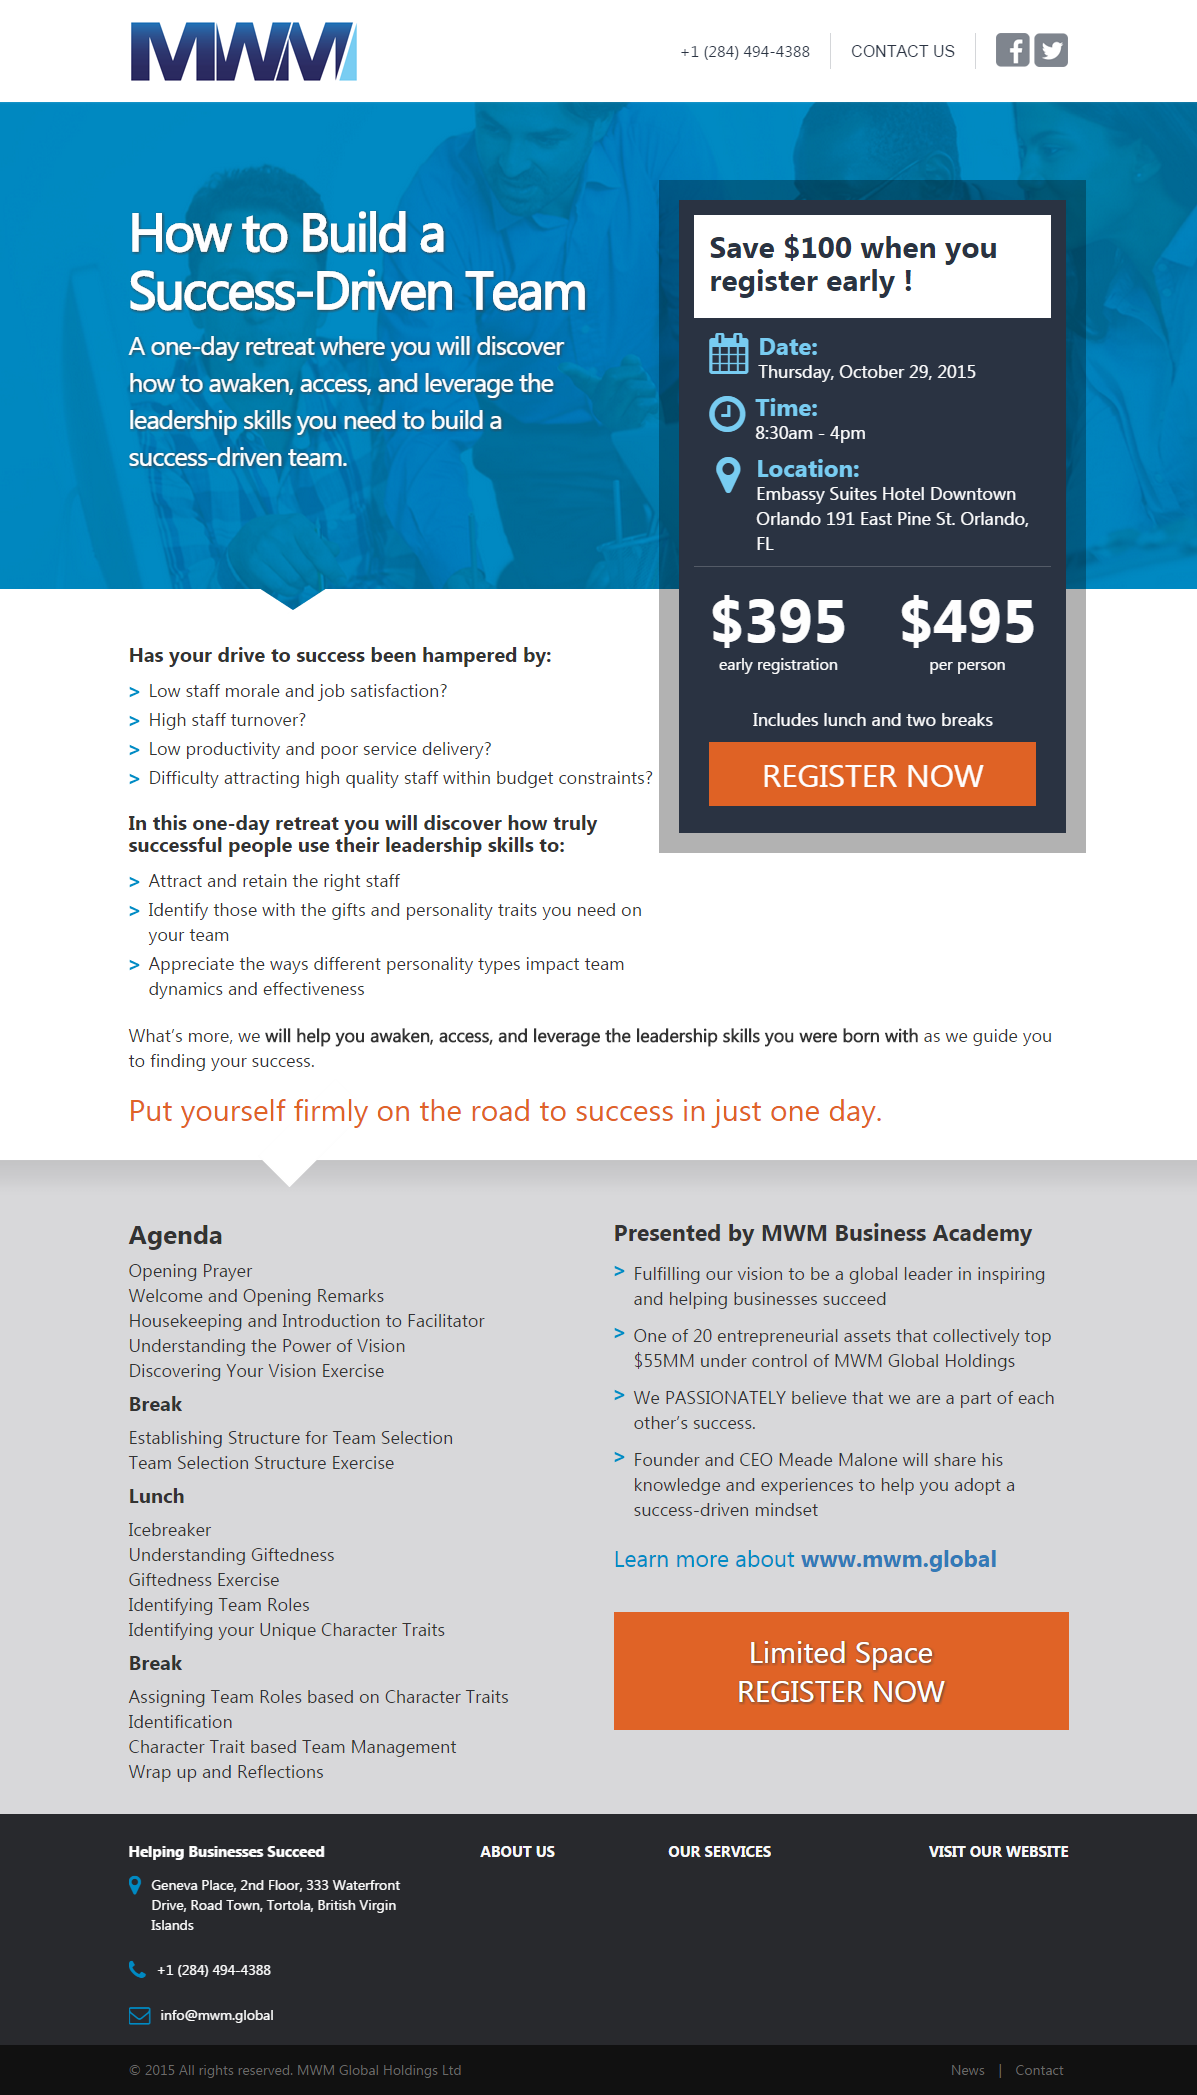 Hybrid landing page/call to action for conference registration